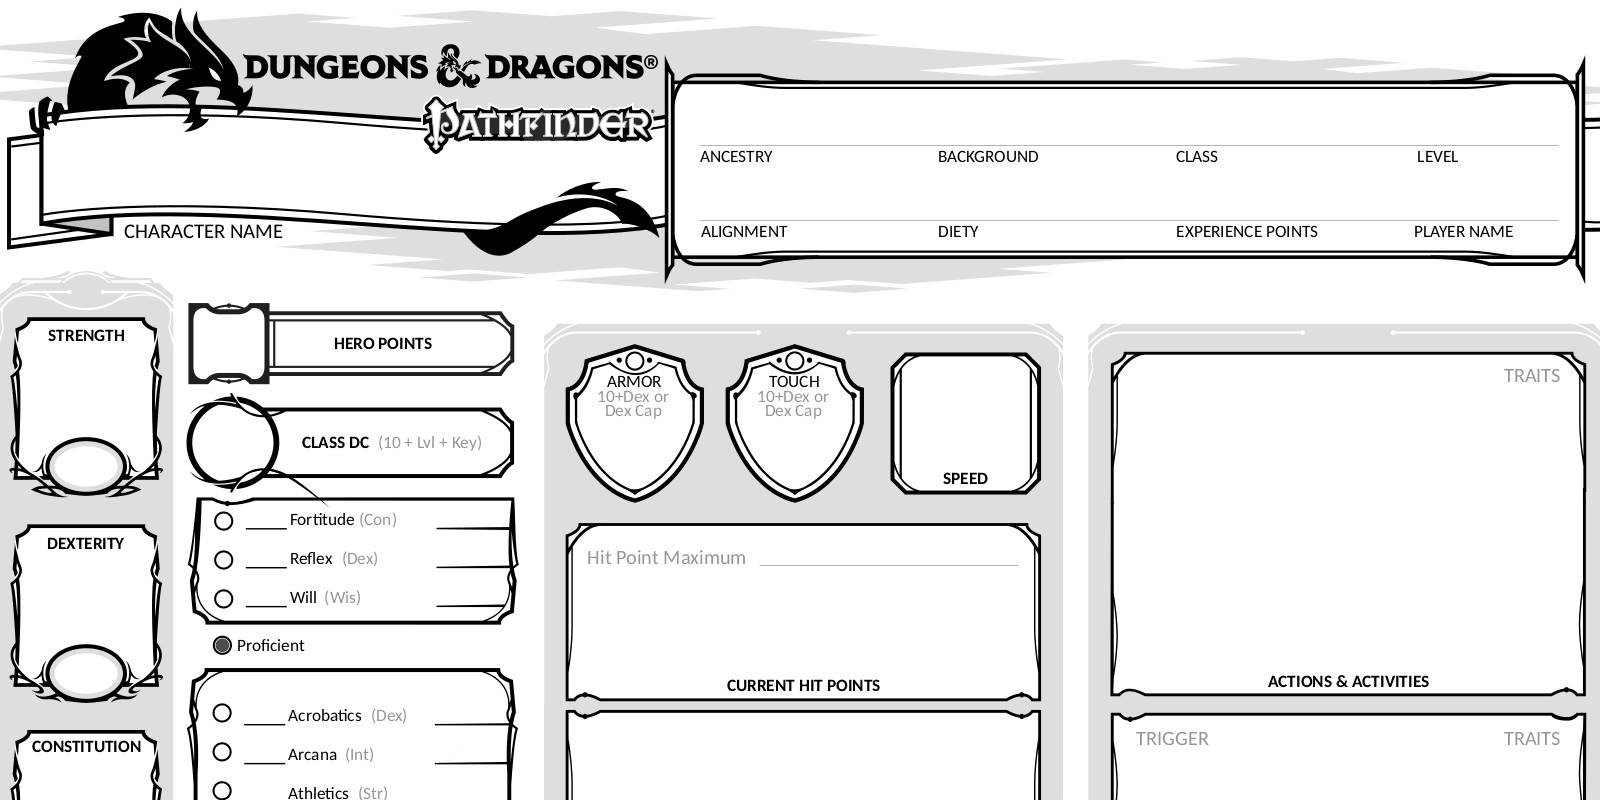 Revised Pathfinder character sheet